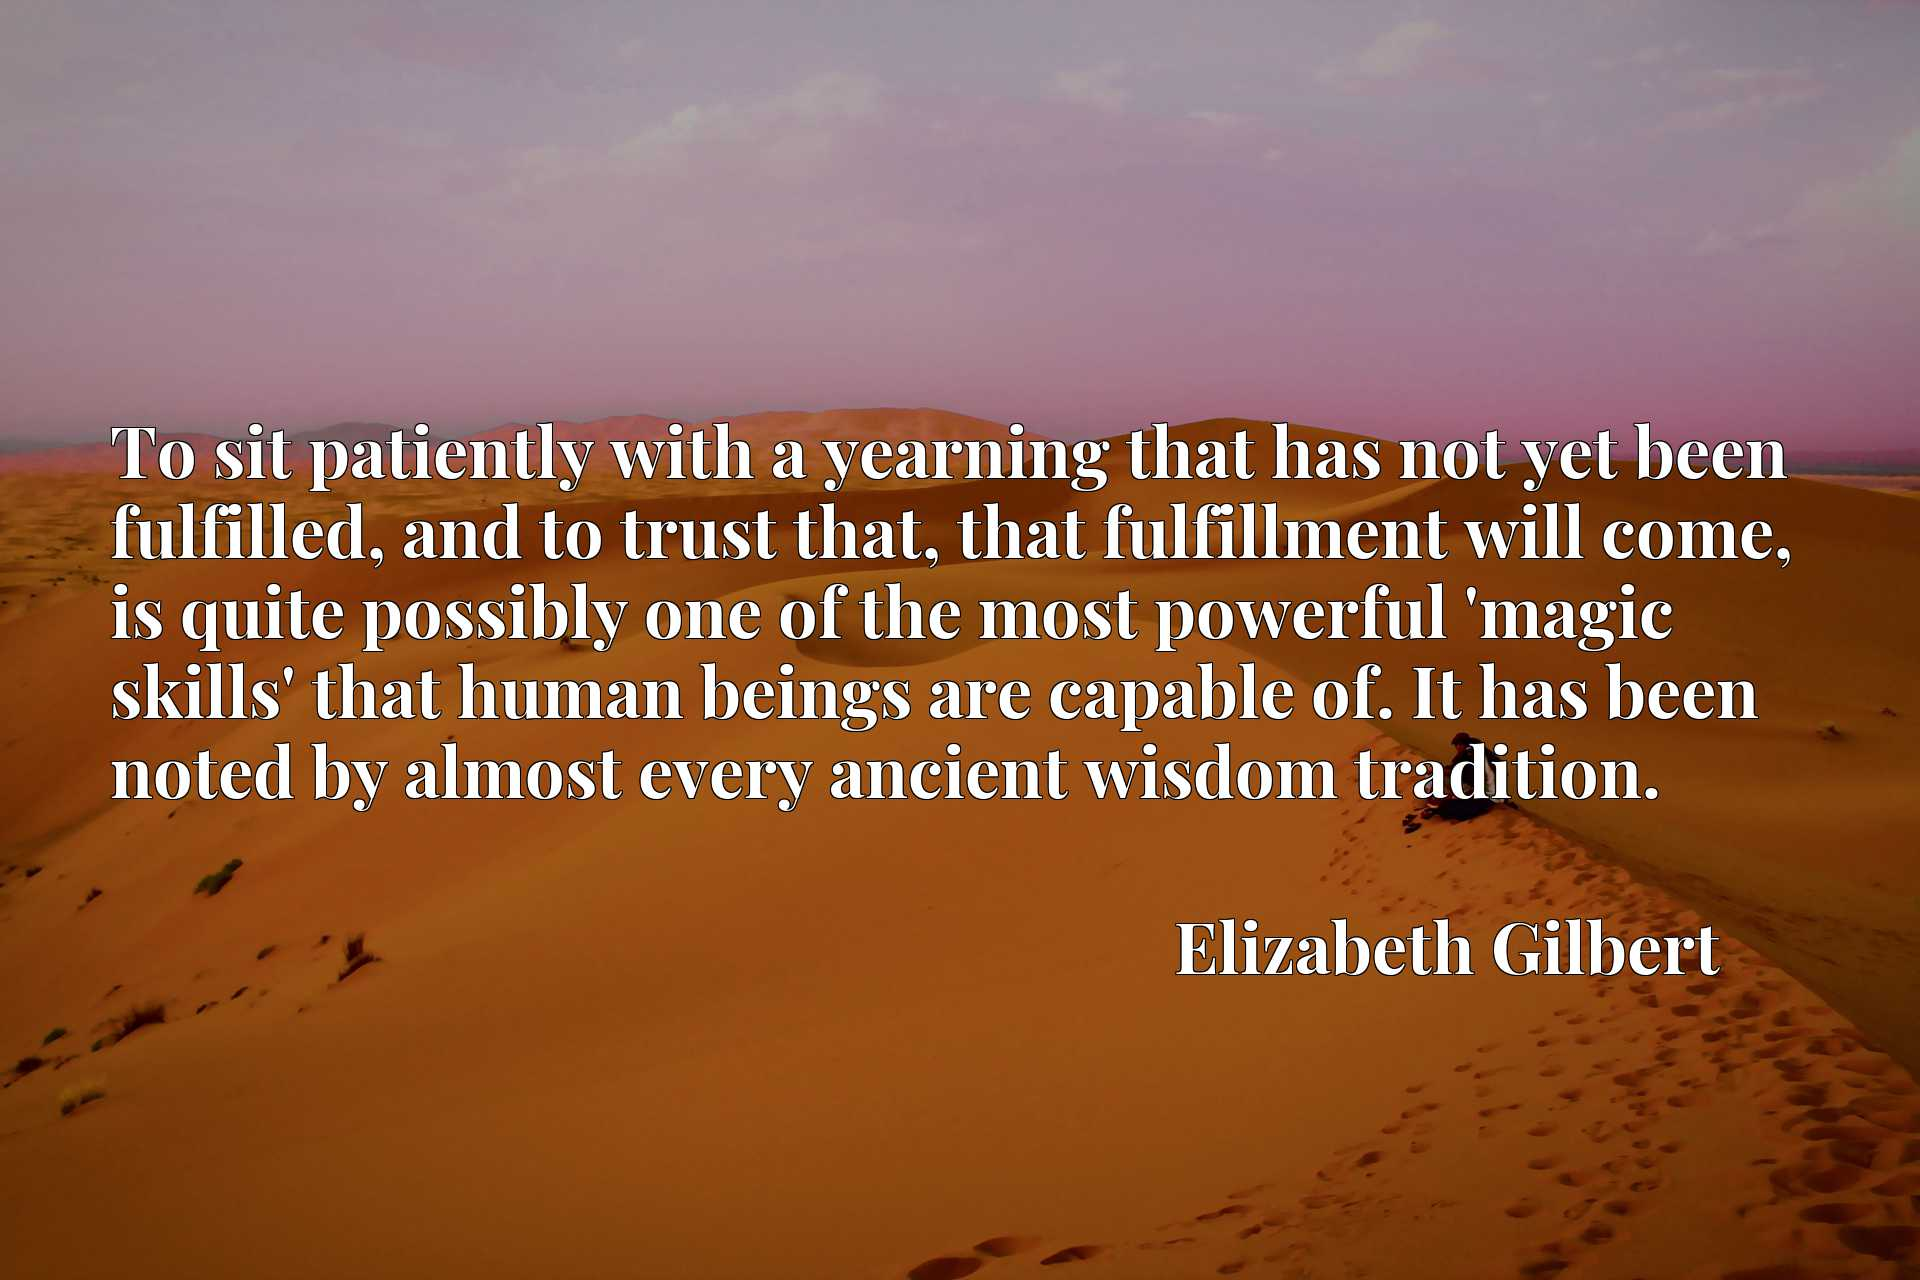 To sit patiently with a yearning that has not yet been fulfilled, and to trust that, that fulfillment will come, is quite possibly one of the most powerful 'magic skills' that human beings are capable of. It has been noted by almost every ancient wisdom tradition.